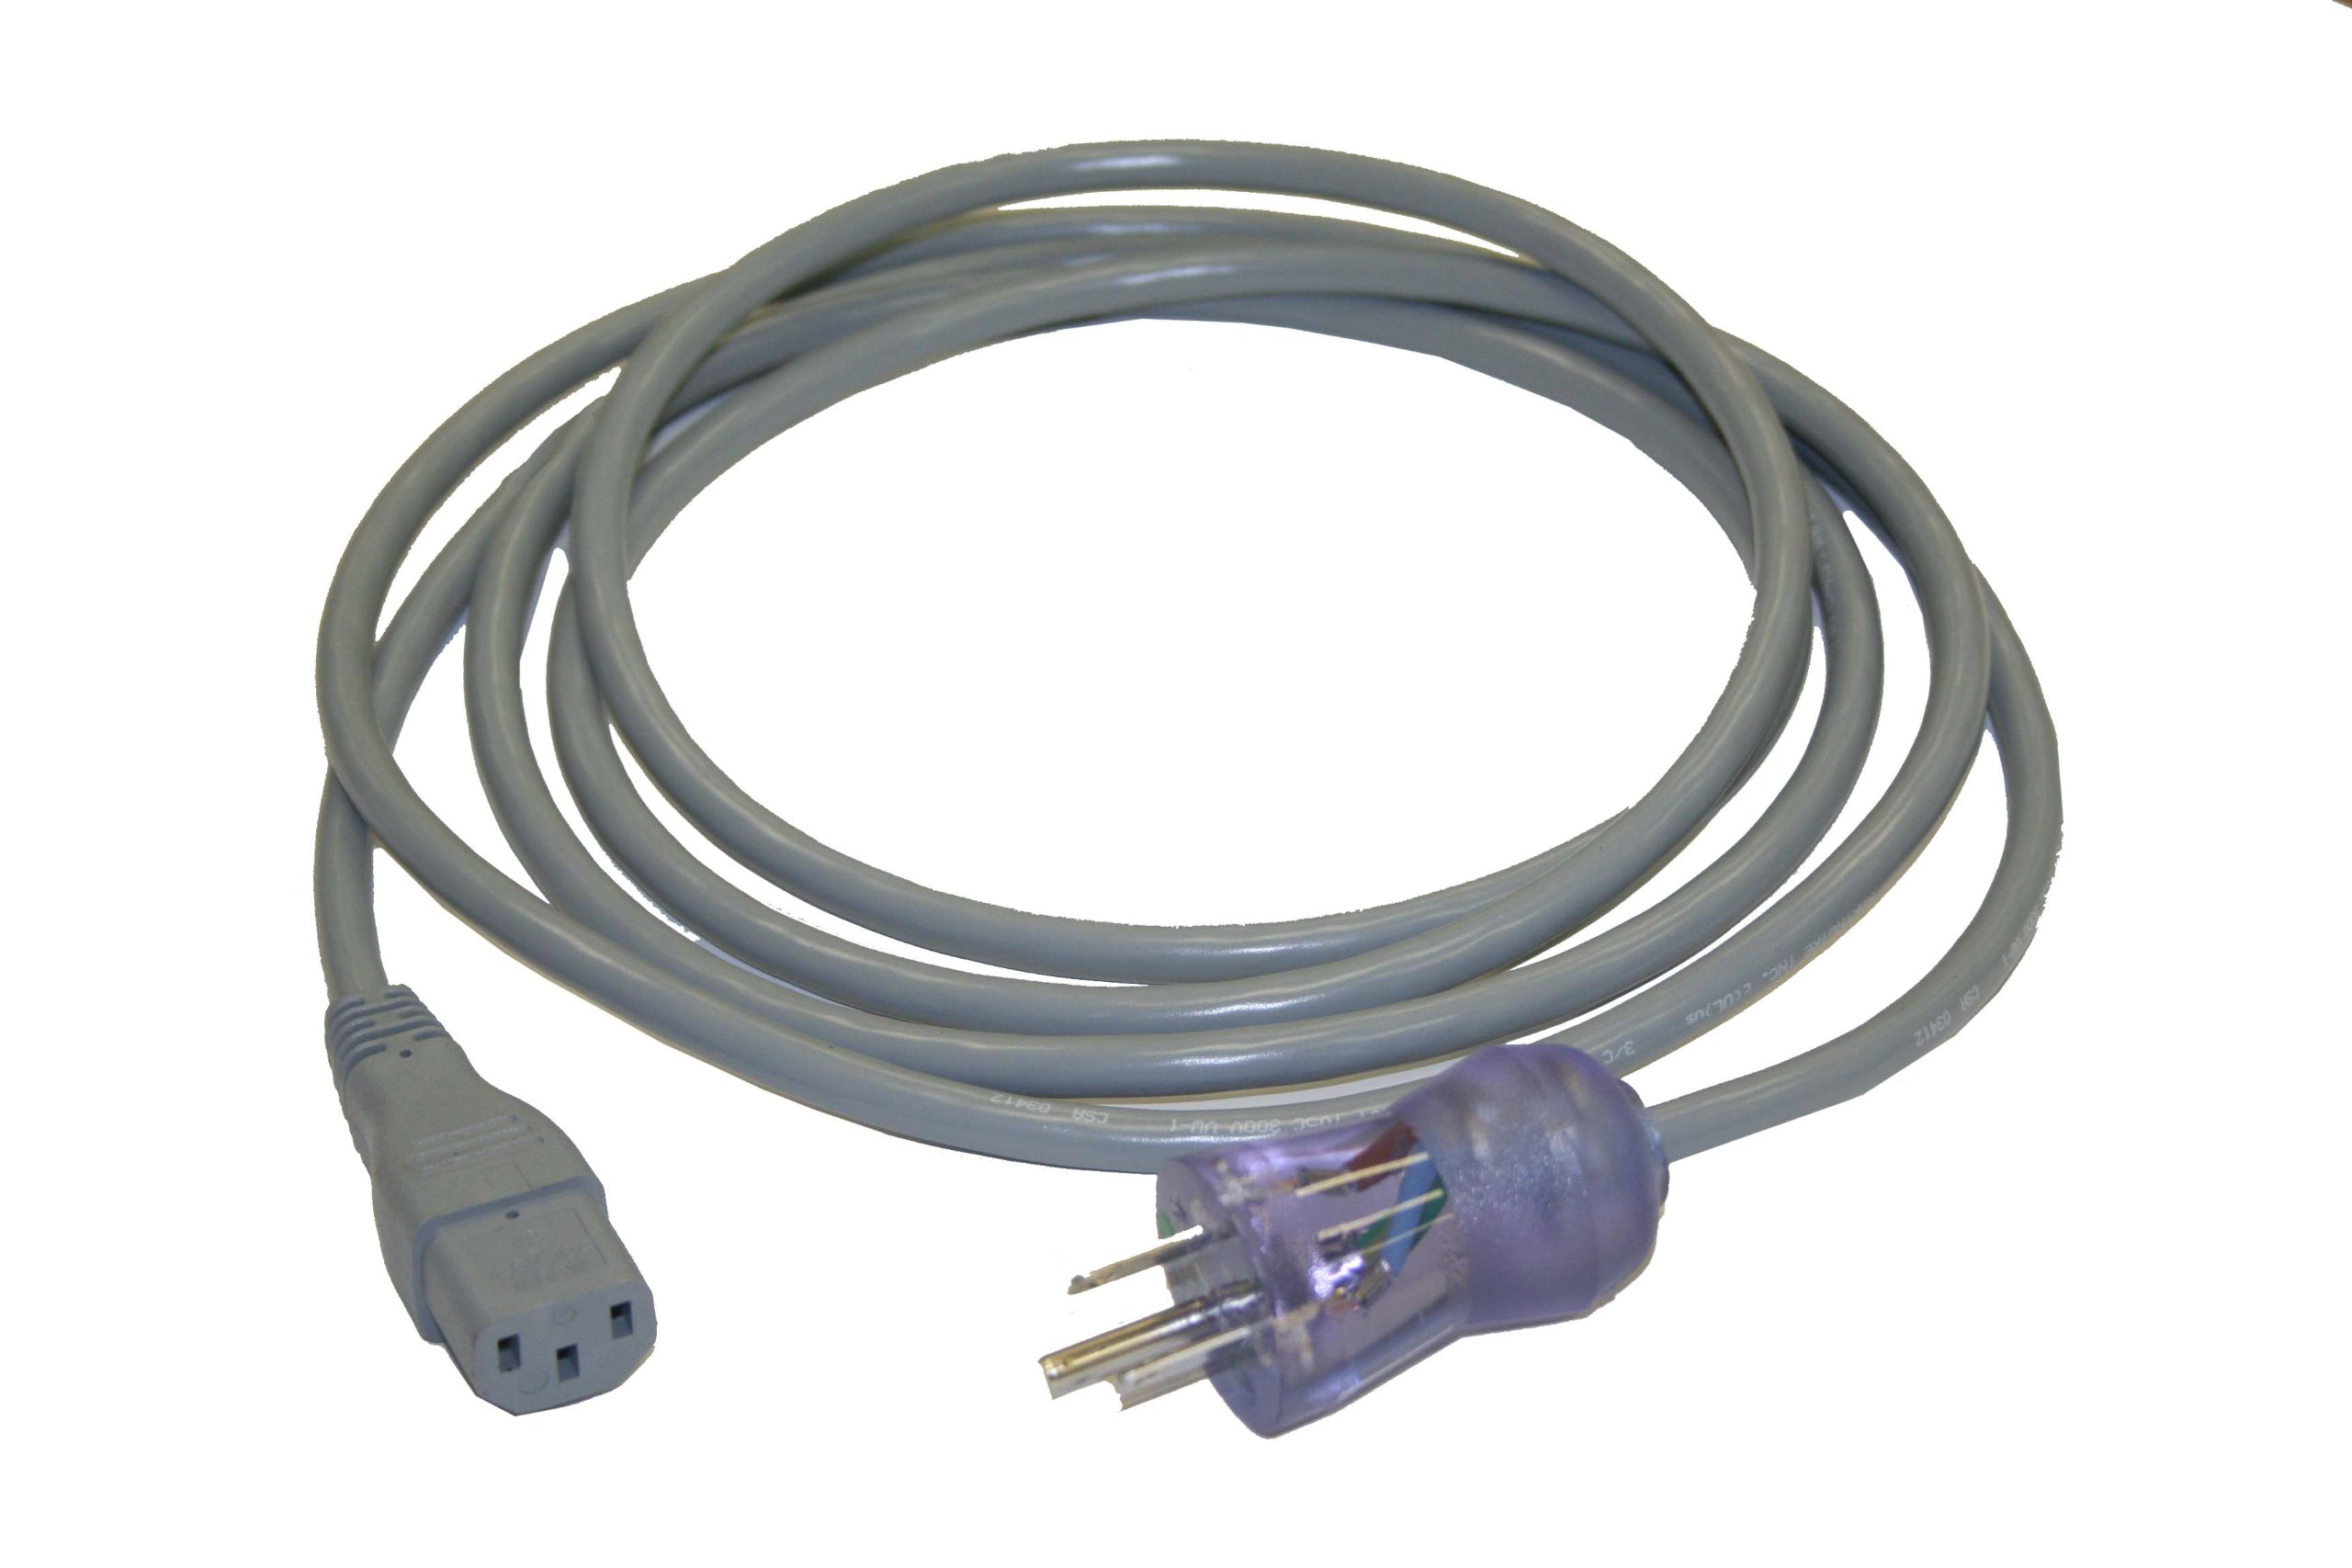 Interpower 86610301 North American Hospital Grade Cord Set, NEMA 5-15 Plug Type, IEC 60320 C13 Connector Type, Gray, 10A Amperage, 125VAC Voltage, 3m Length